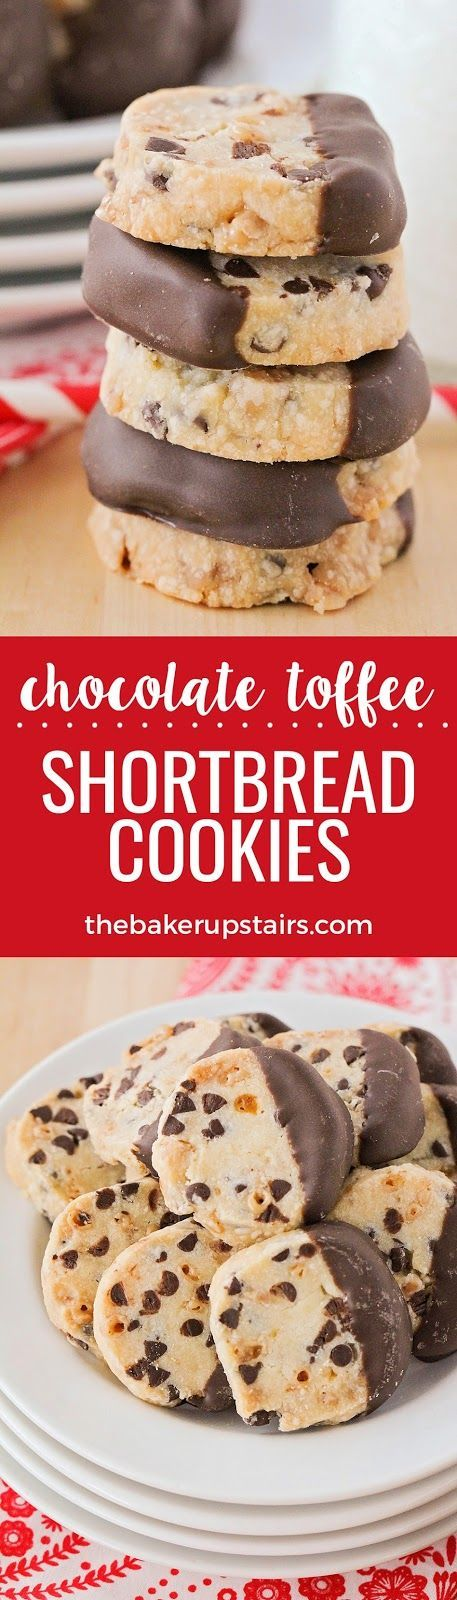 These crisp and buttery chocolate toffee shortbread cookies are so simple to make, and so delicious!